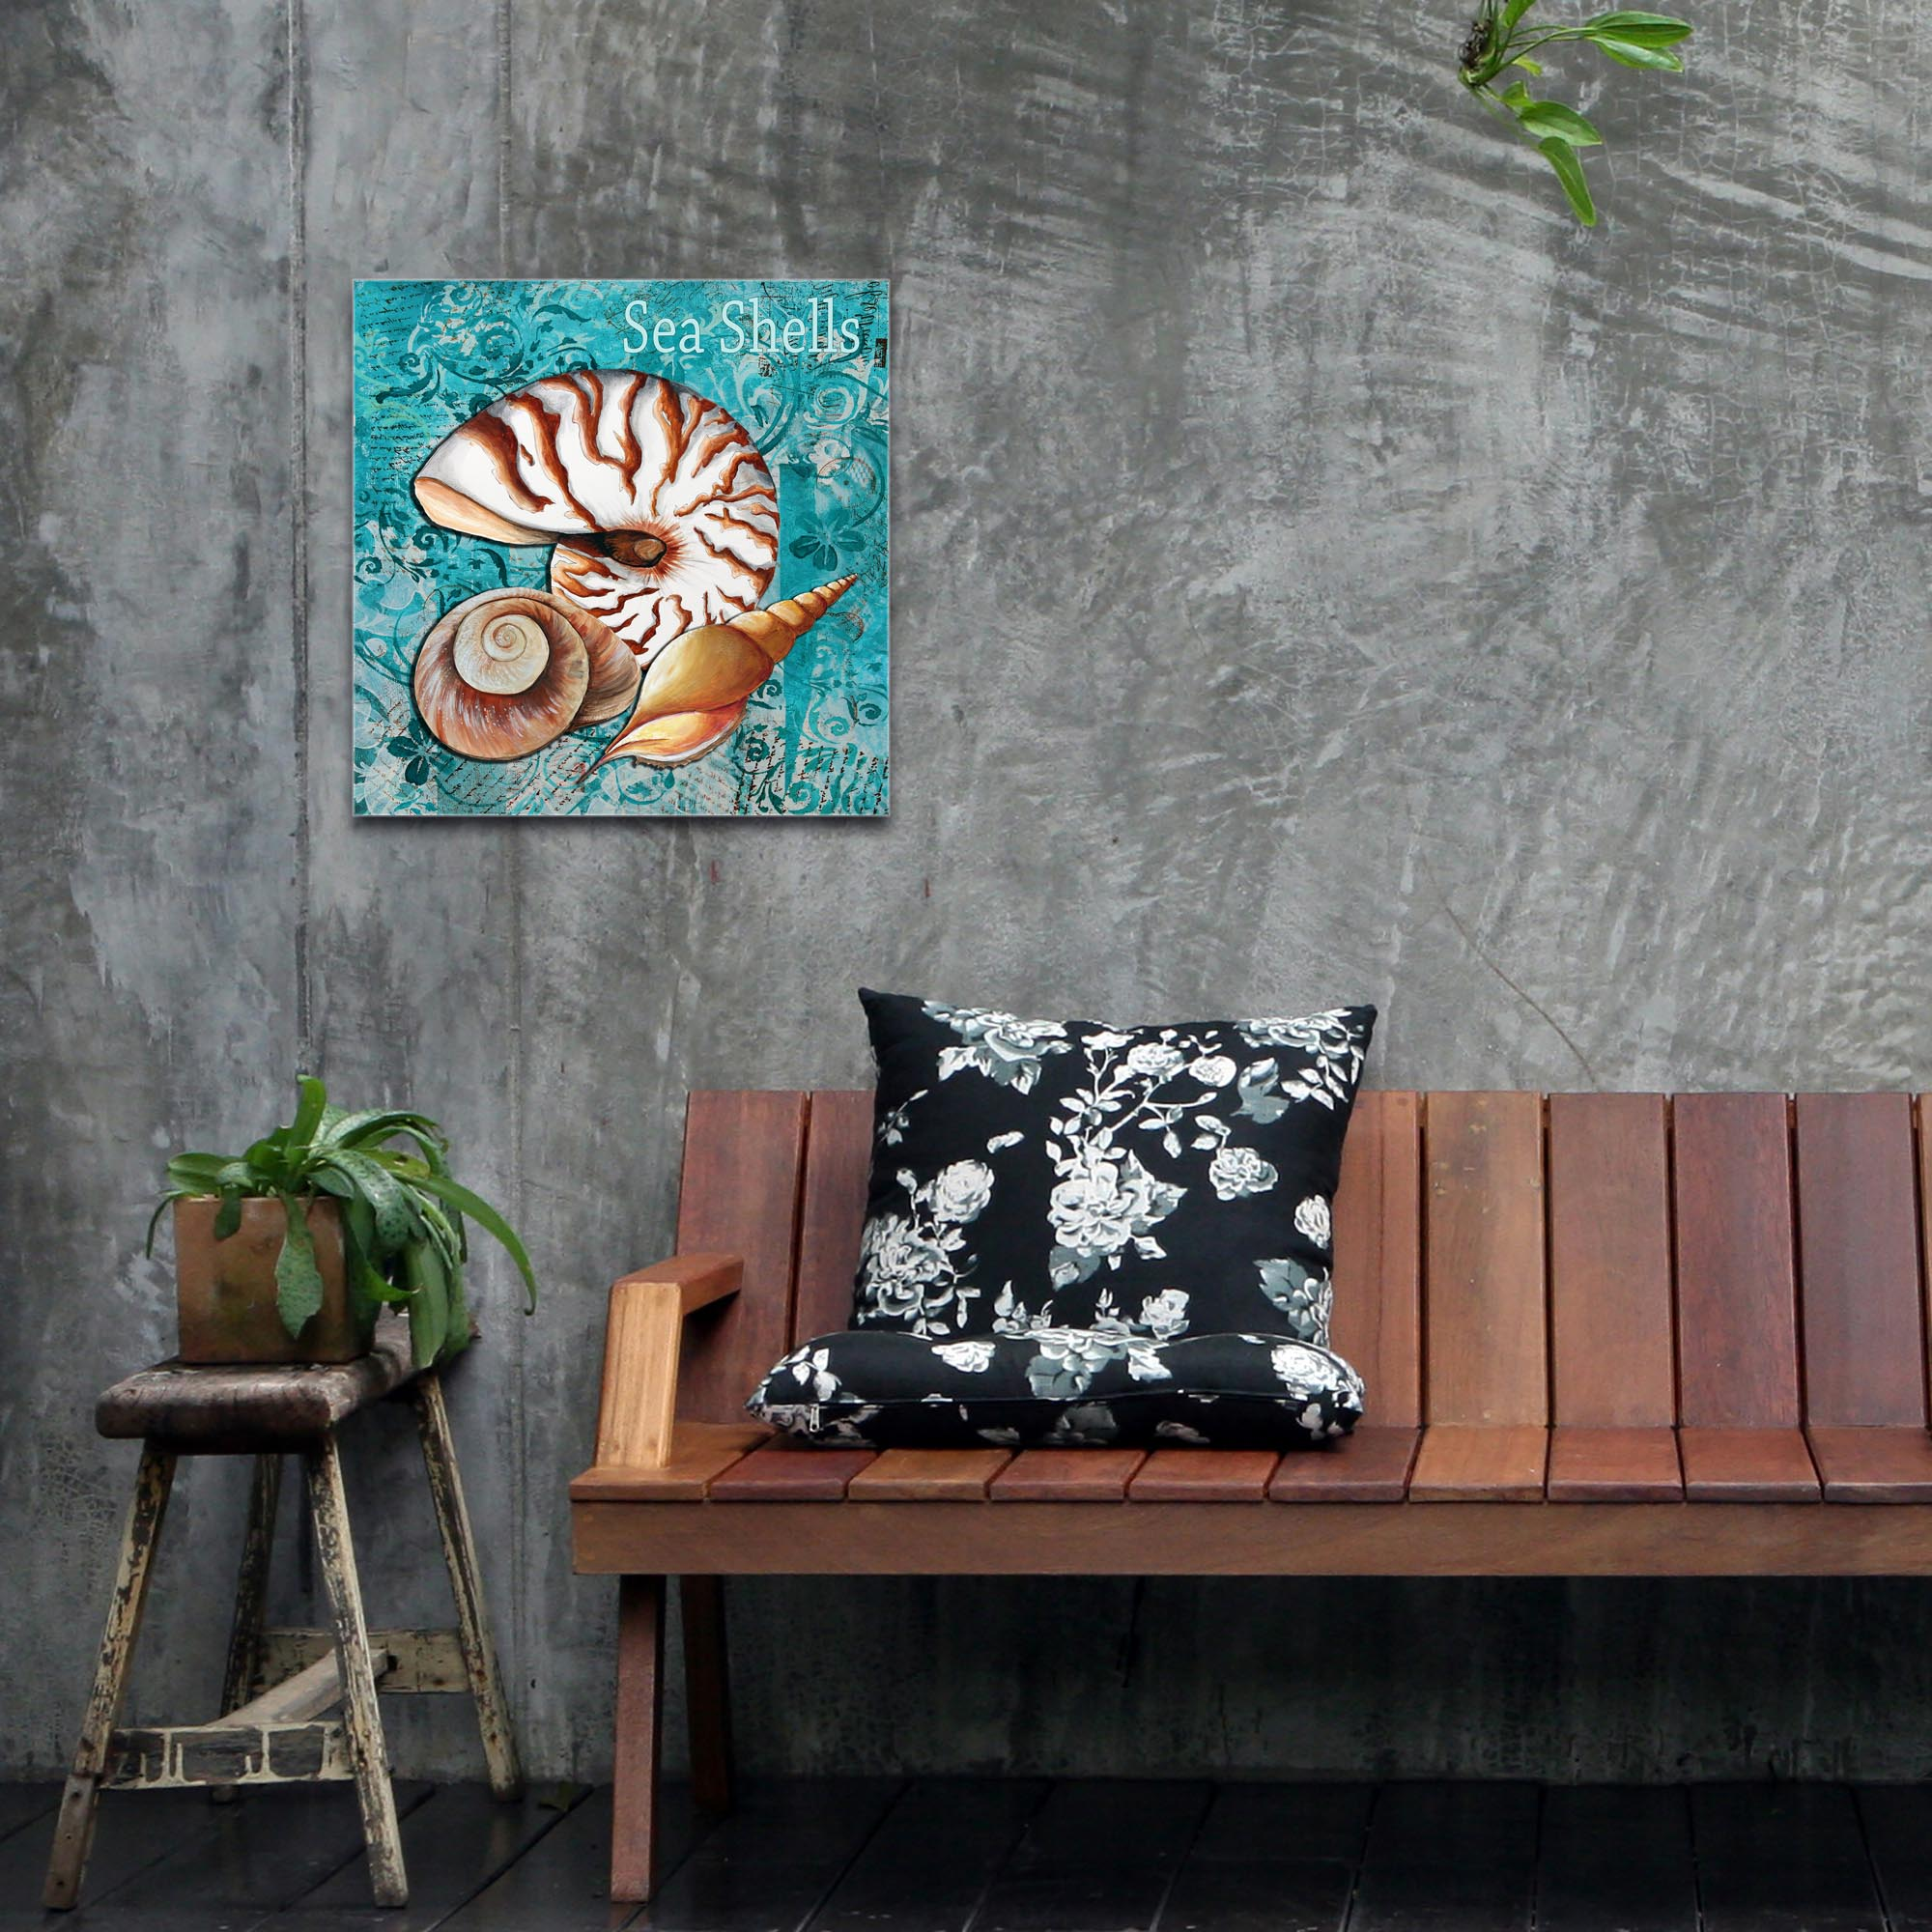 Beach Decor 'Sea Shells' - Coastal Bathroom Art on Metal or Acrylic - Lifestyle View 2